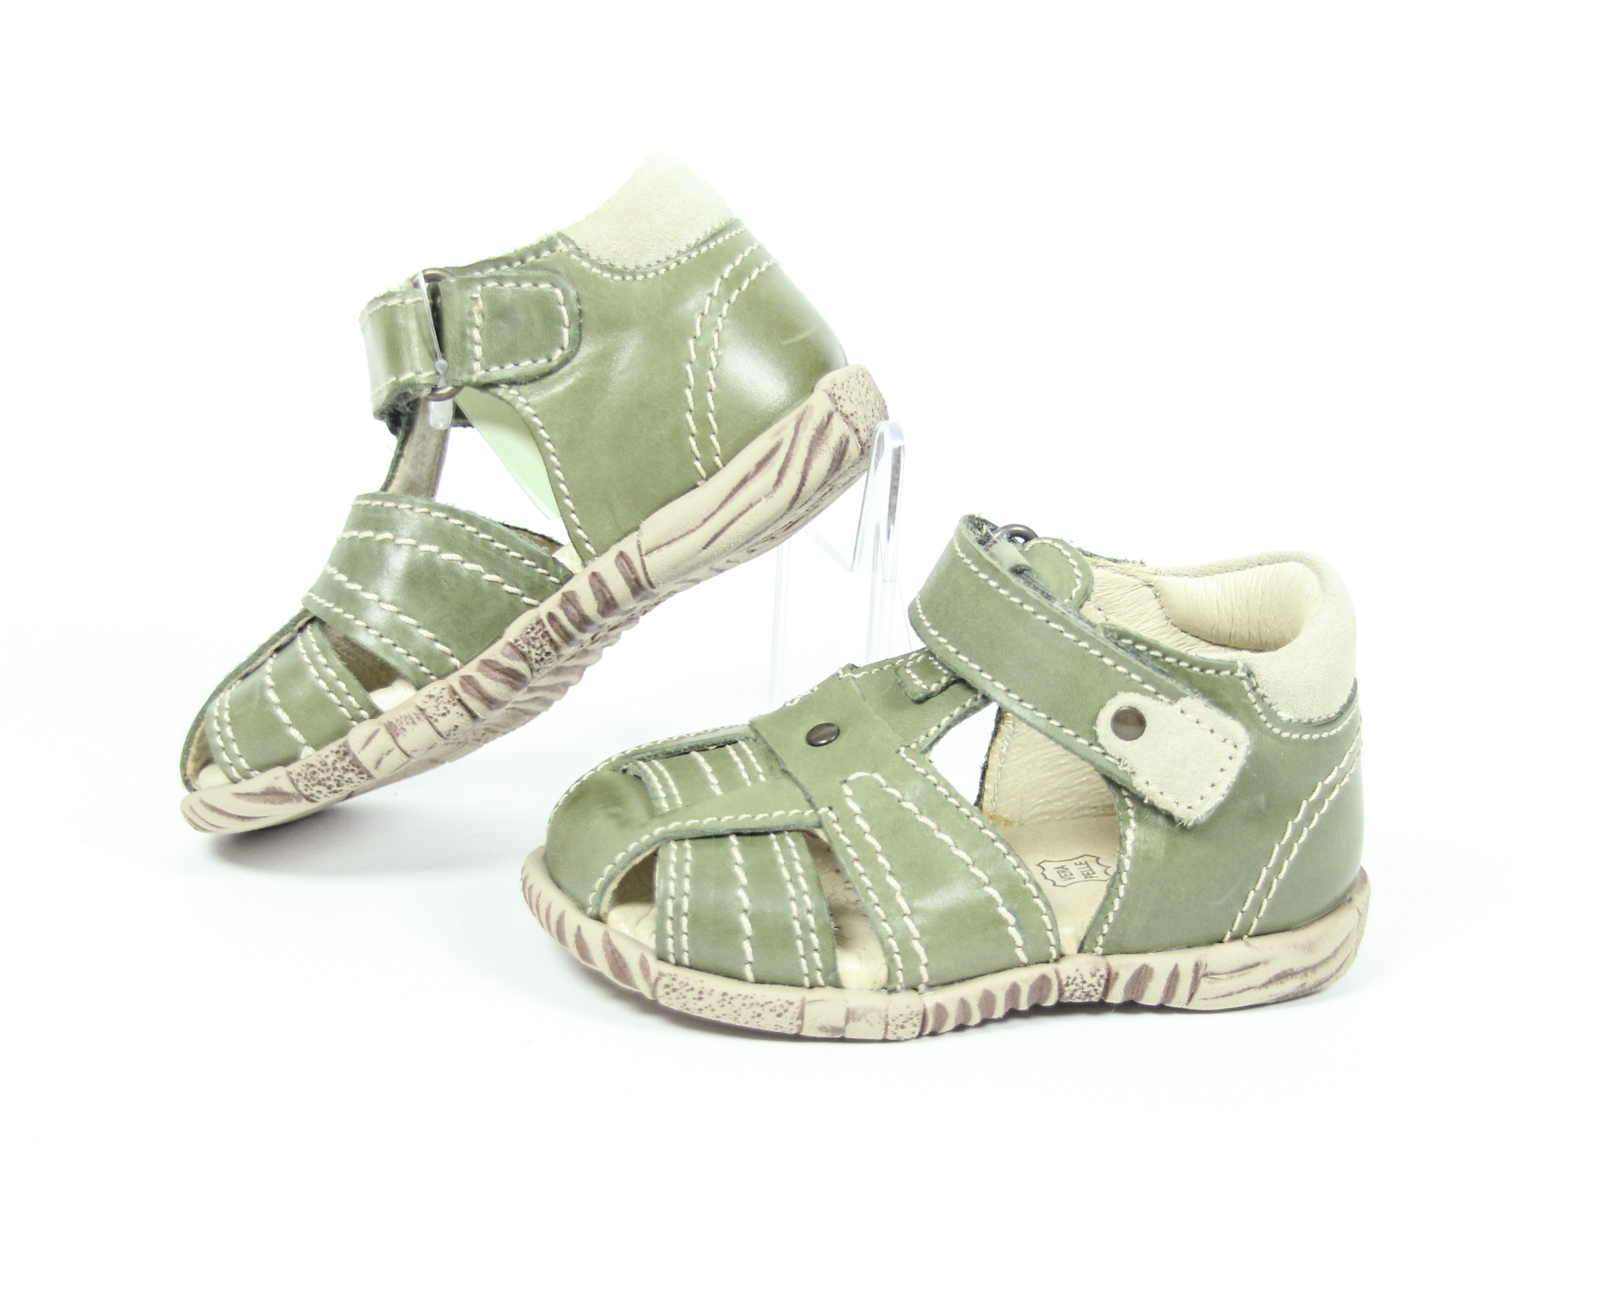 primigi lars jungen sandalen gr 20 26 leder klett kinder baby sandaletten neu ebay. Black Bedroom Furniture Sets. Home Design Ideas